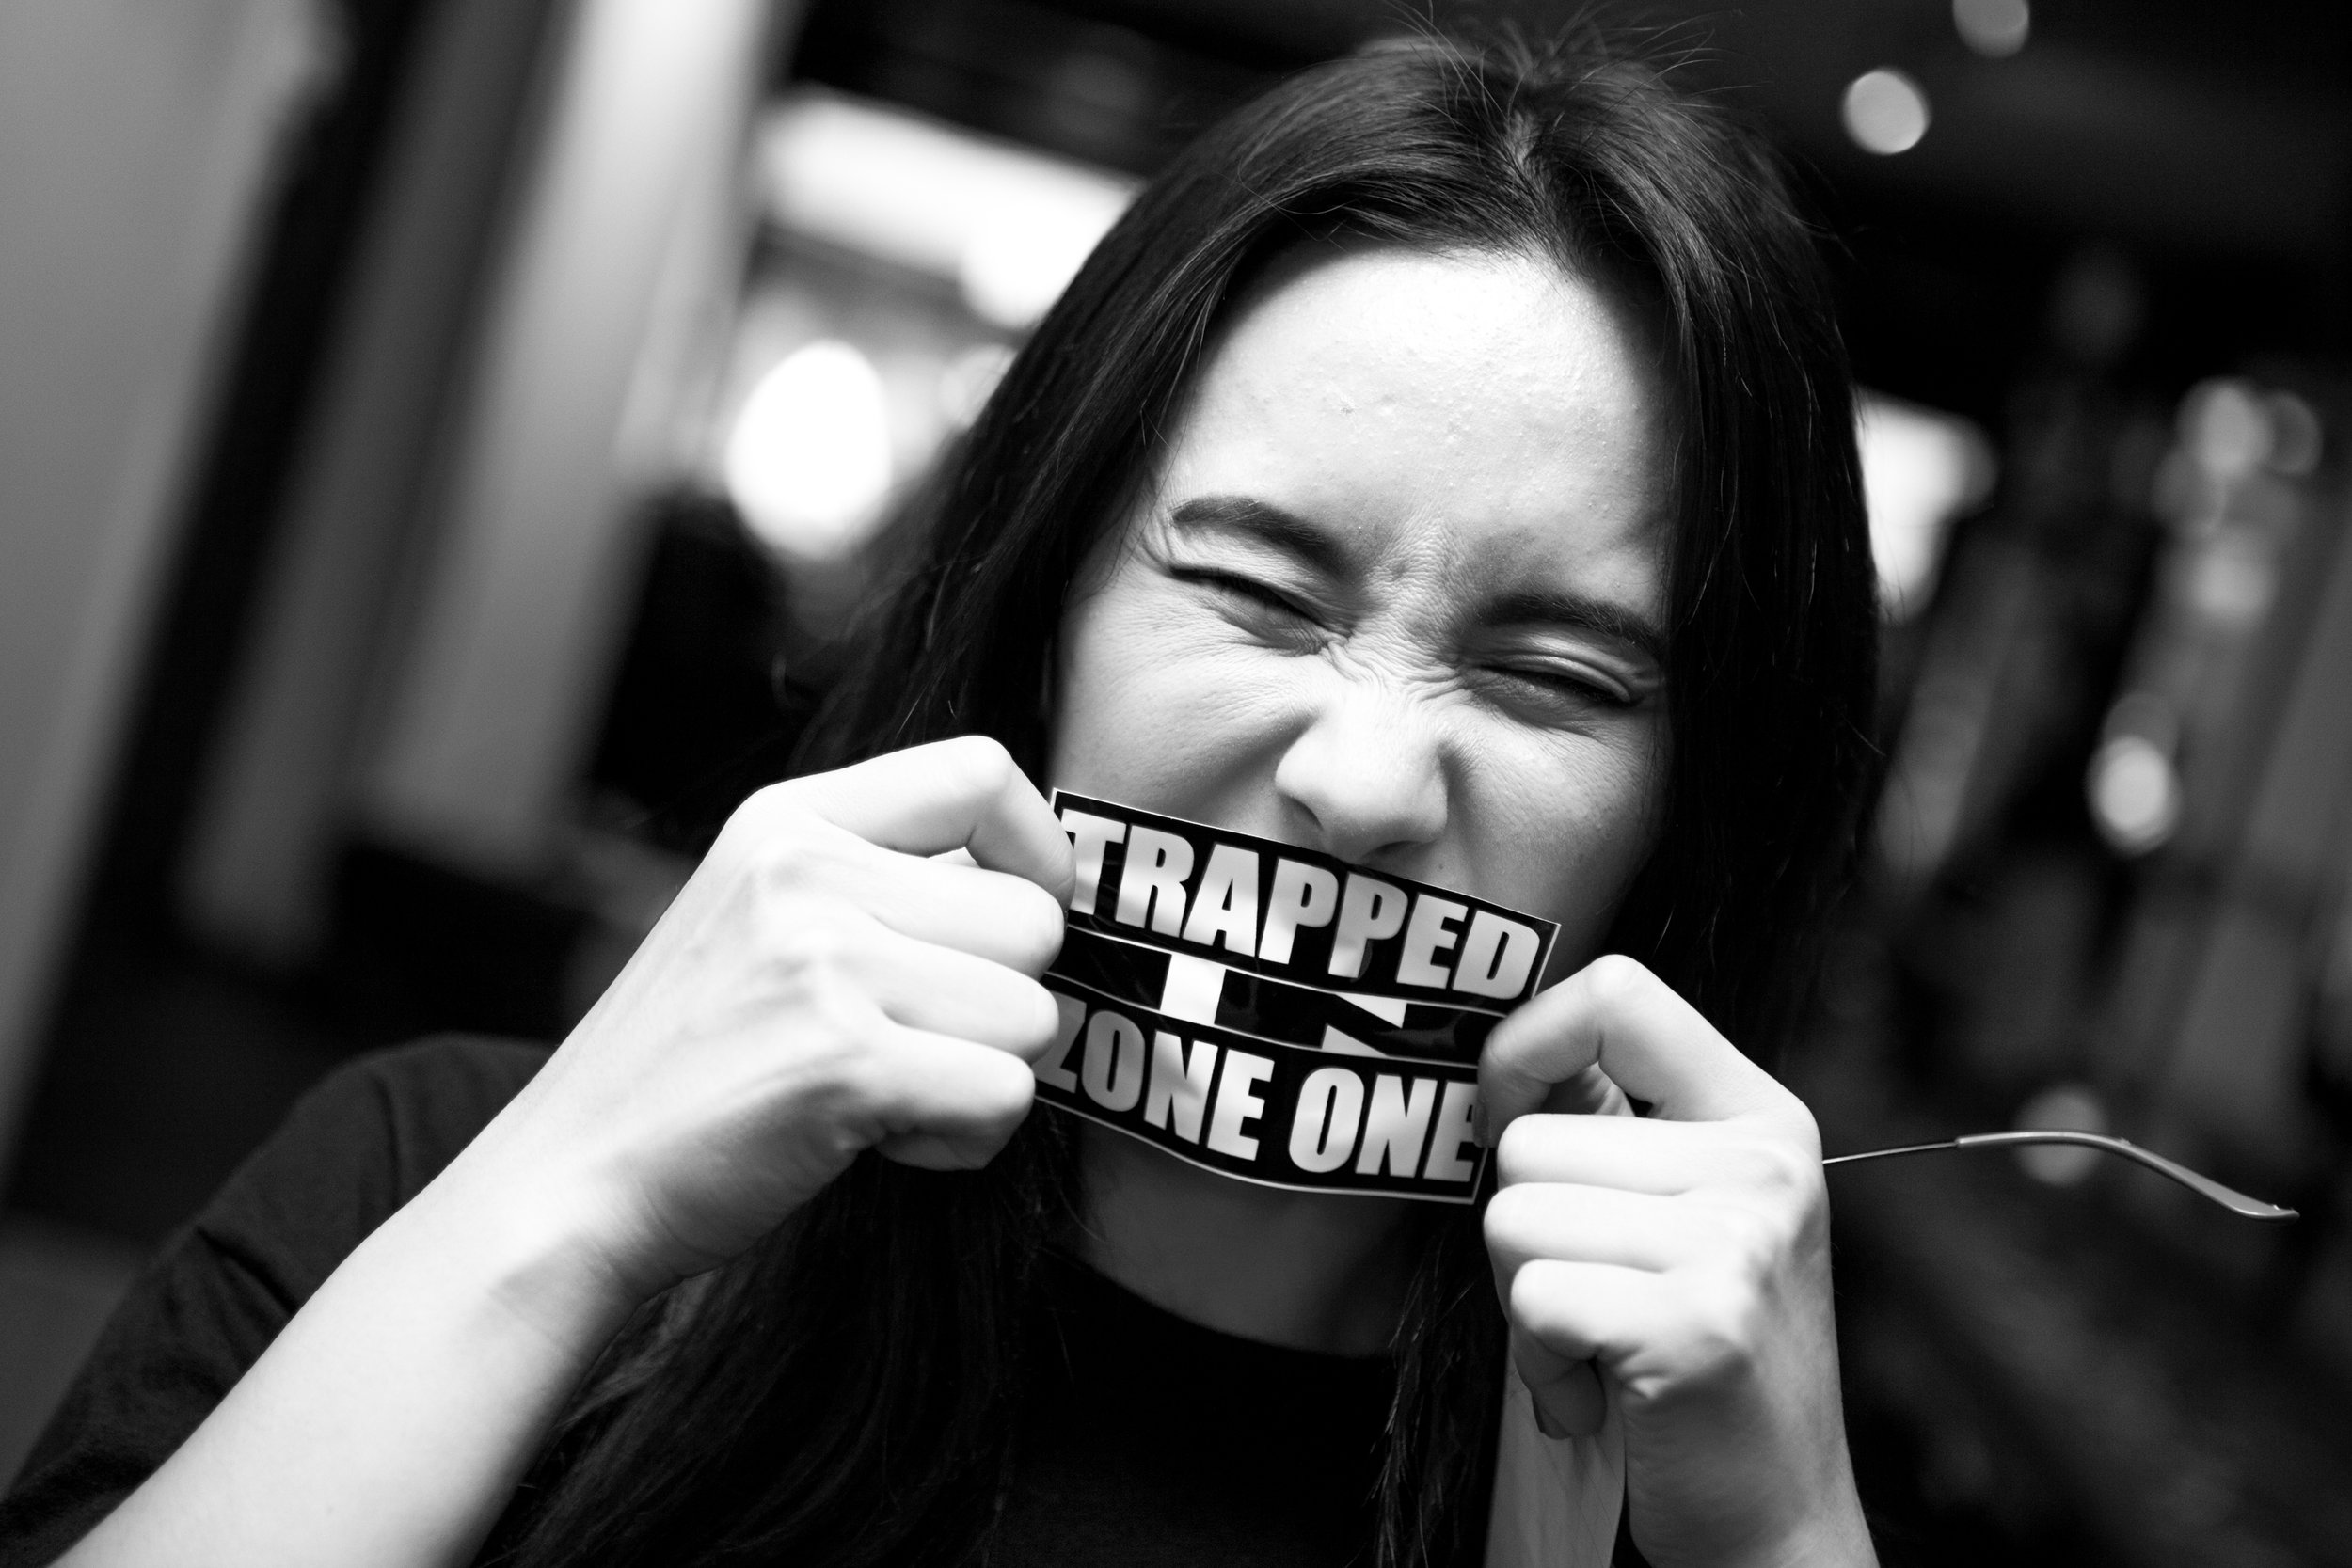 About - Trapped in Zone One is a registered London based arts collective, all with a passion for the arts and culture, adding that artistic touch to communities in real-time cultural insight.Our philosophy is to build strong partnership with community groups and organisations and support our artists, whether it's their first steps in the art world or if they're established already.Combining different possibilities in visual arts, installations, craft and music field.Since 2017 we have been proud ambassadors of GreatArt and host exhibitions, running monthly creative workshops to curating interior and public murals.